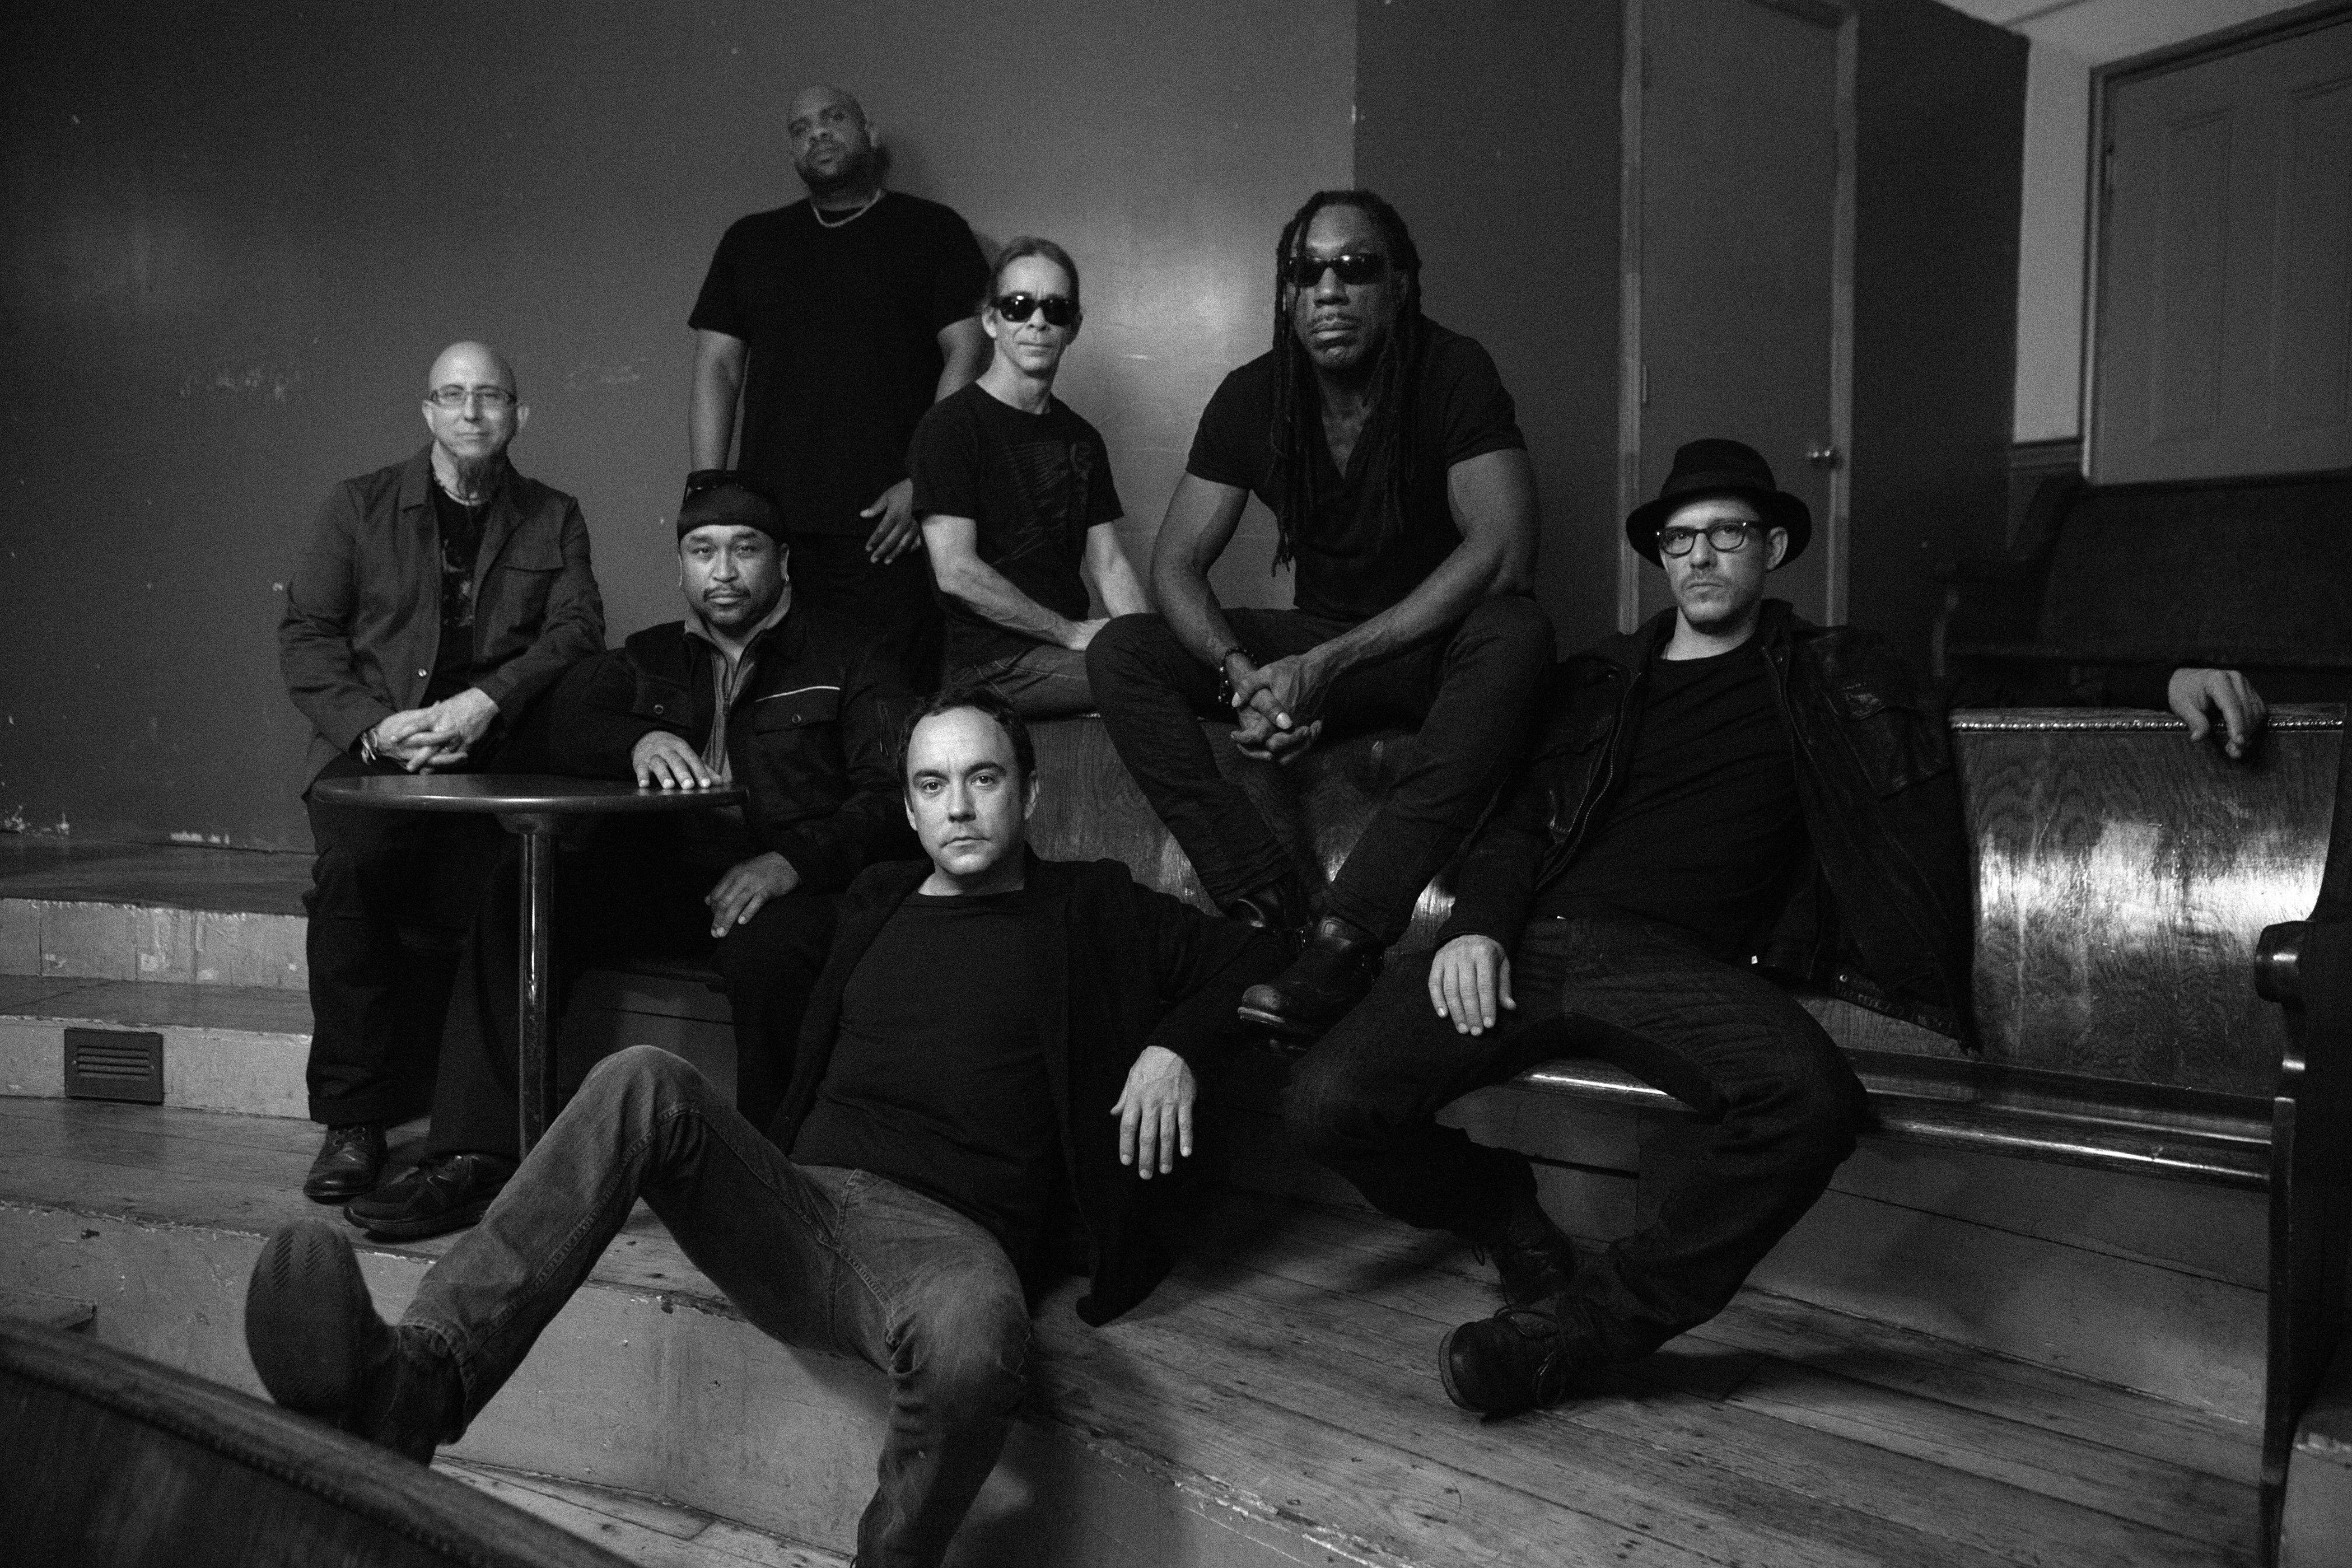 Dave Matthews Band member Boyd Tinsley, seen here sitting on the bench second from right, has responded to a lawsuit from his former employee, Richmond resident Andrew Rothenberg.